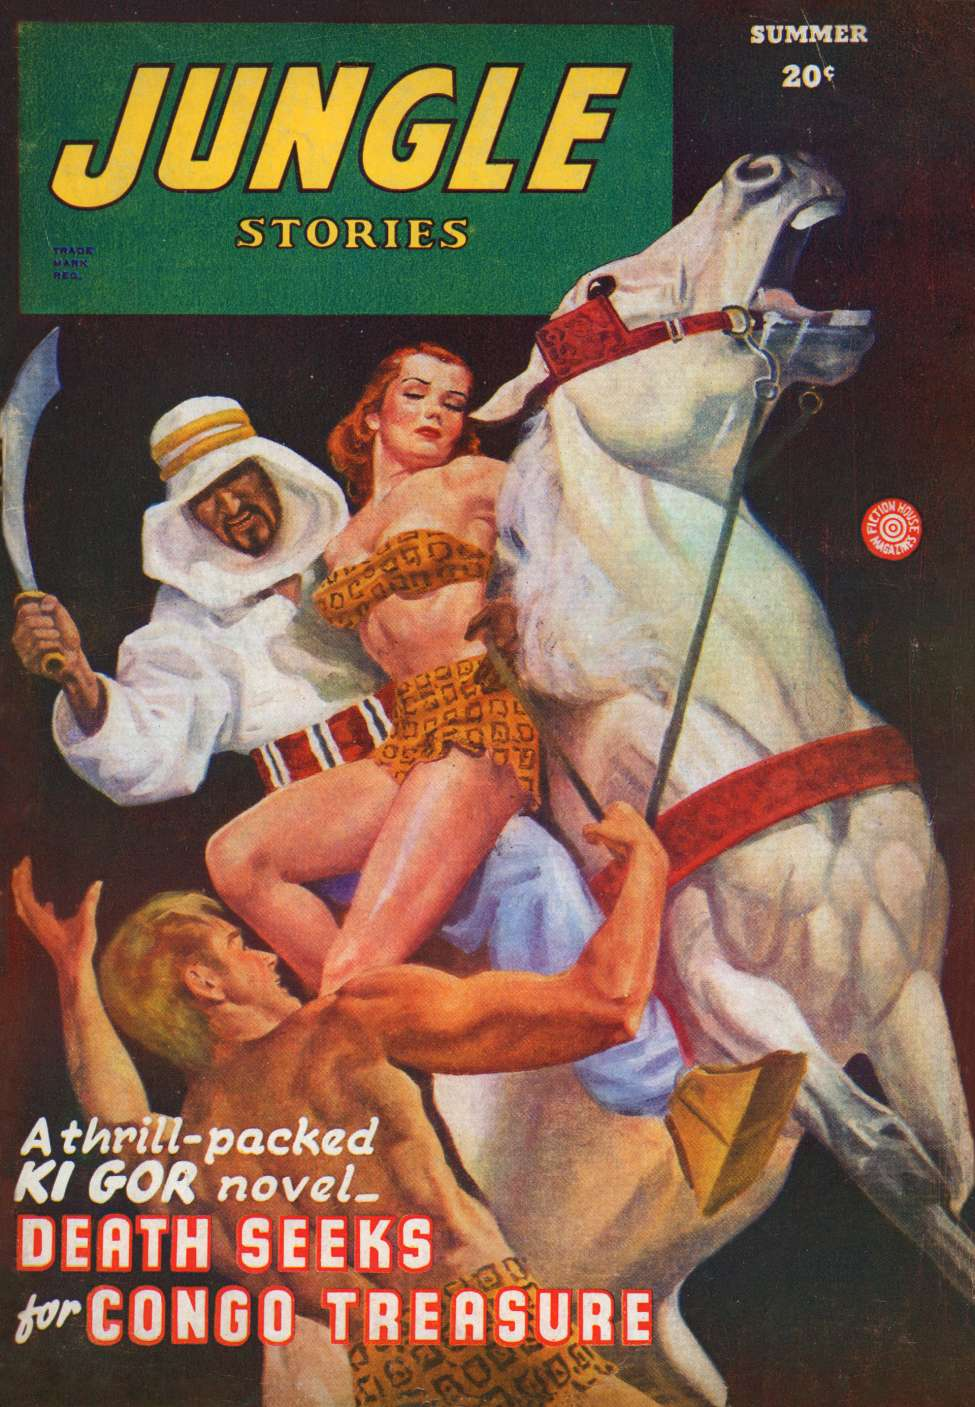 Comic Book Cover For Jungle Stories v3 07 - Death Seeks for Congo Treasure - John Peter Drummond